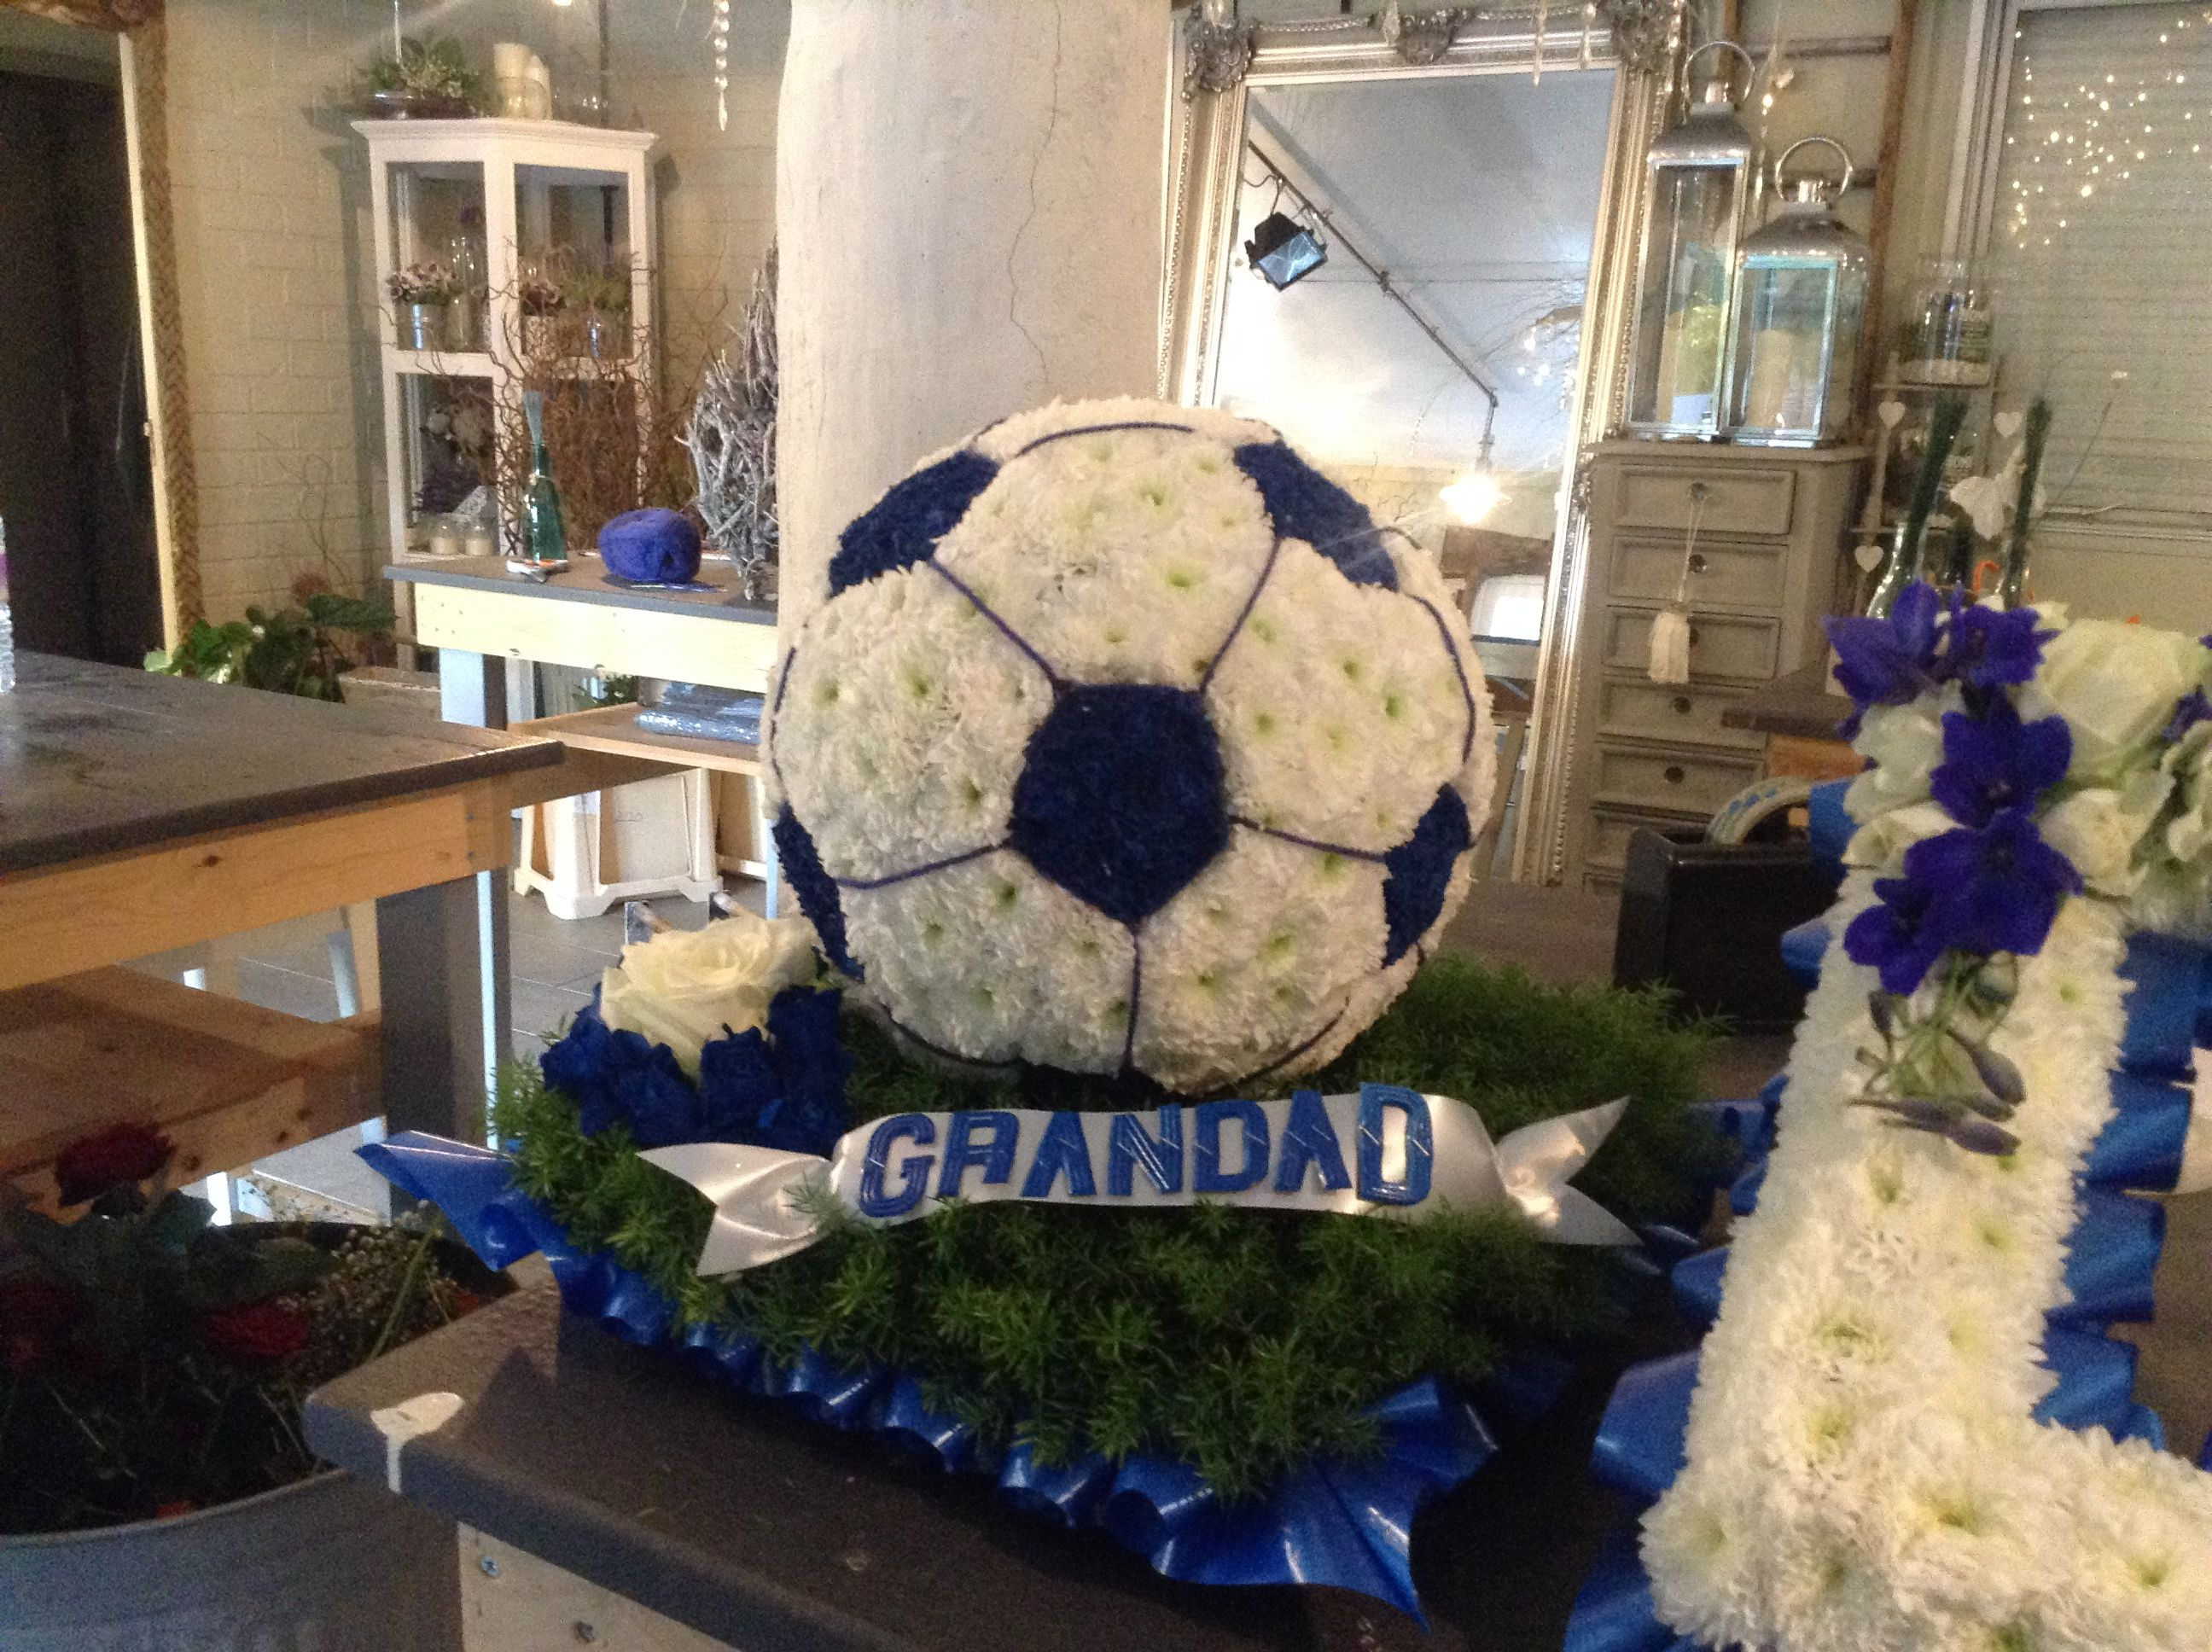 Funeral flowers football funeral flower tribute chelsea football funeral flowers football funeral flower tribute chelsea football funeral flower tribute bespoke funeral izmirmasajfo Image collections